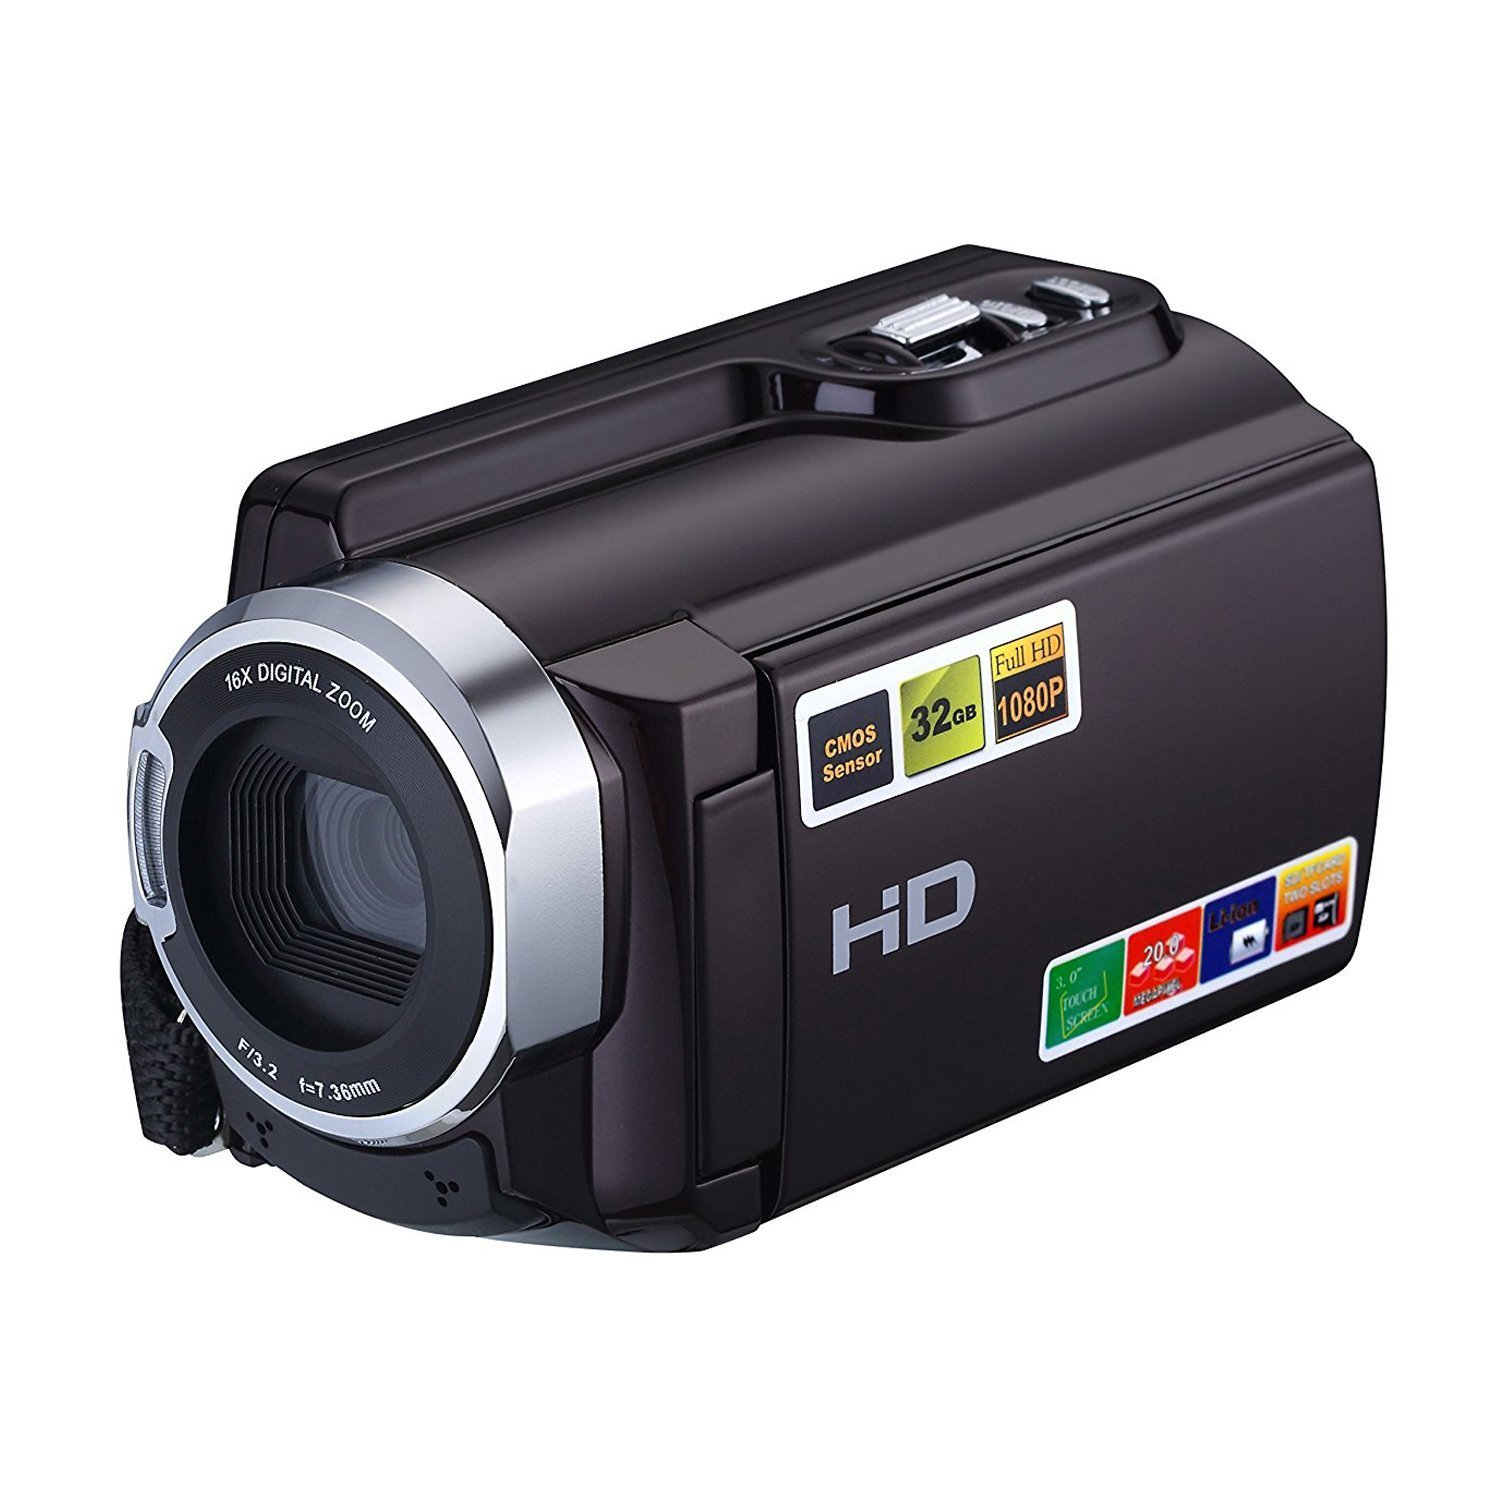 Camera Camcorder, Camking HDV-5053 24MP HD 1080P WiFi 16X Digital Zoom Video Camcorder with 3.0' LCD and 270 Degree Rotation Screen Camking HDV-5053 24MP HD 1080P WiFi 16X Digital Zoom Video Camcorder with 3.0 LCD and 270 Degree Rotation Screen